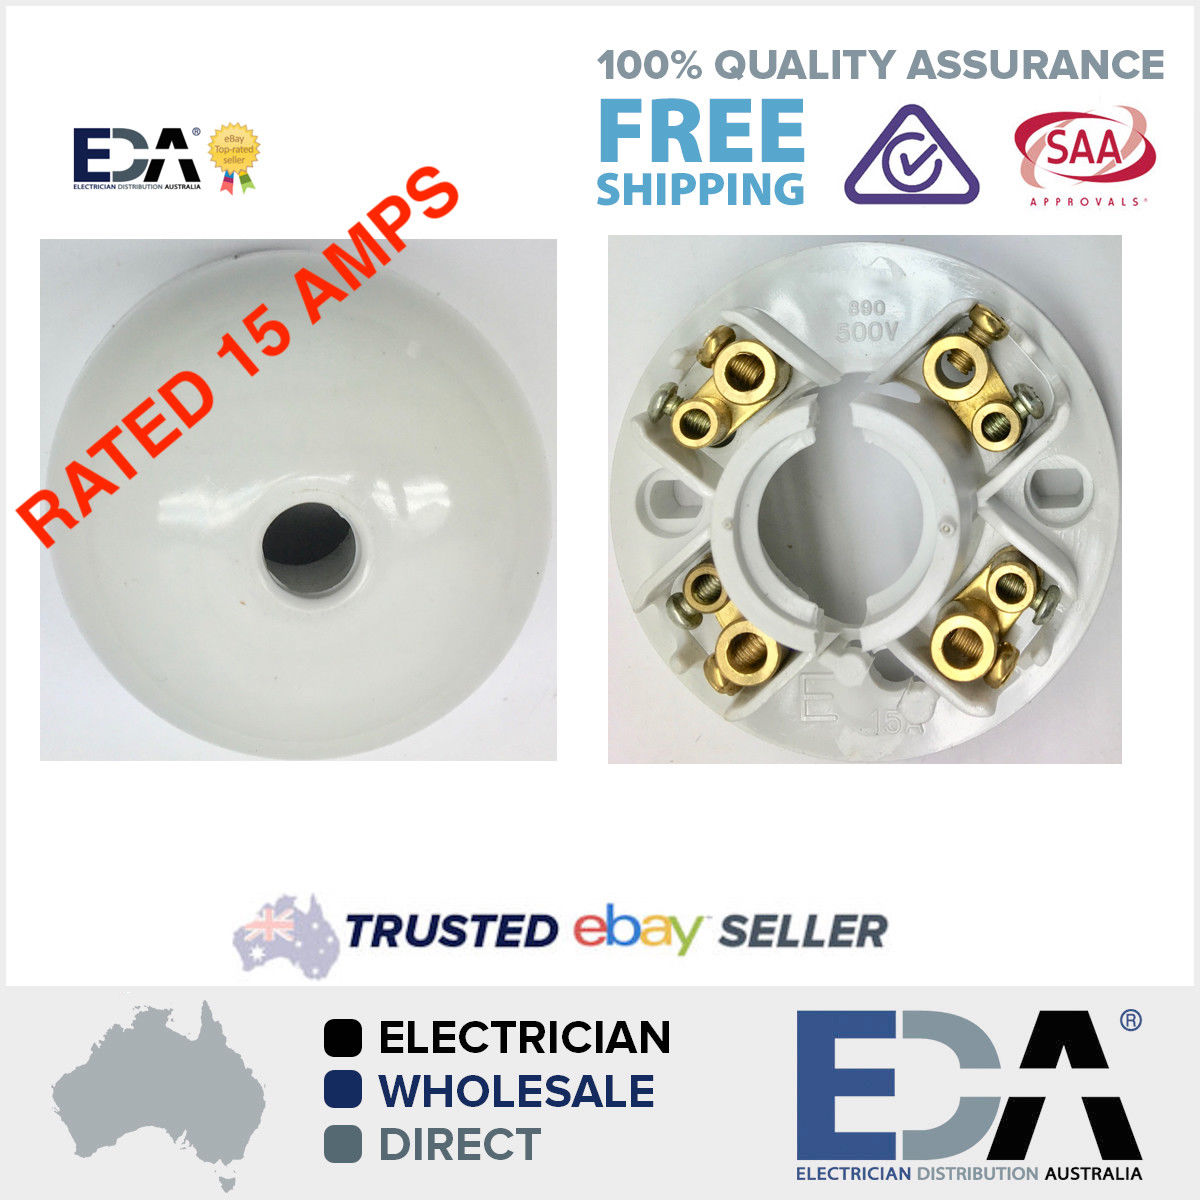 Ceiling rose 4 terminal fan light clipsal style 15 amp rated surface products aloadofball Gallery